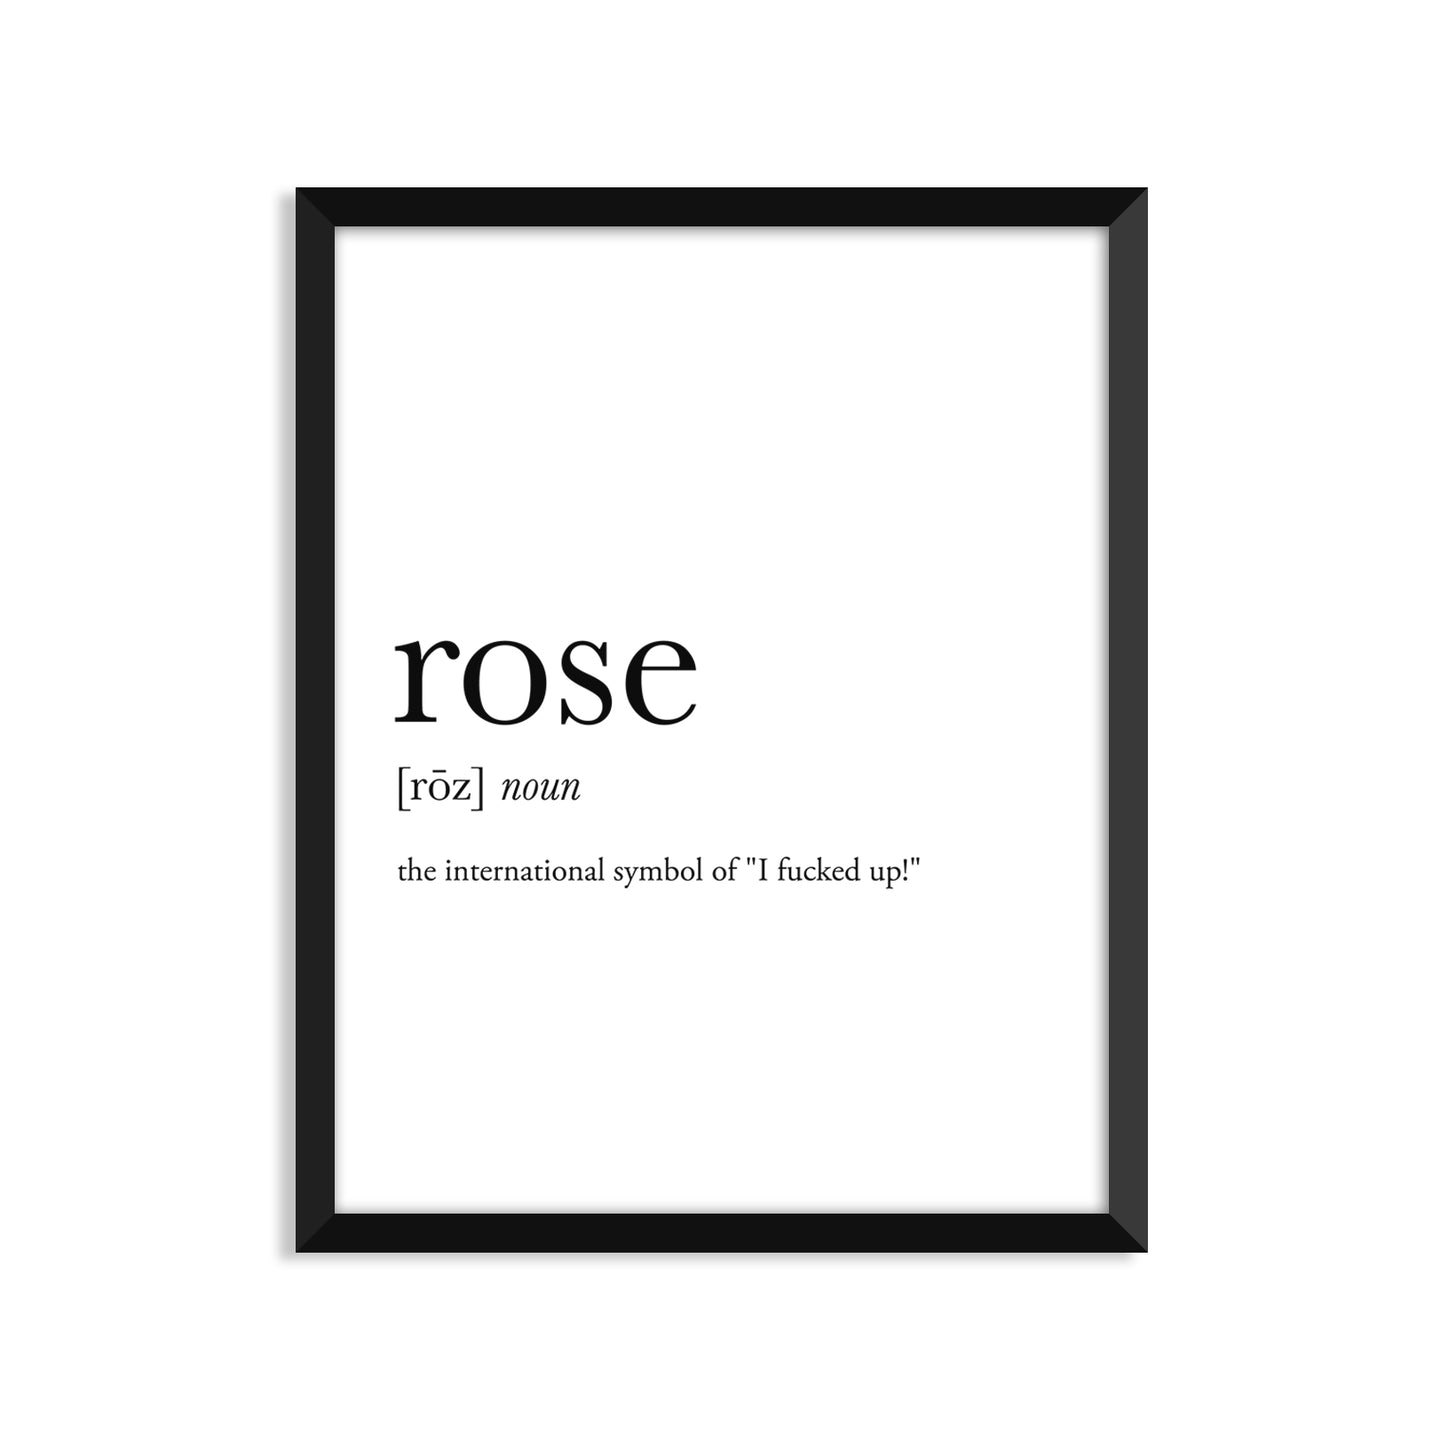 Rose Definition - Unframed Art Print Or Greeting Card